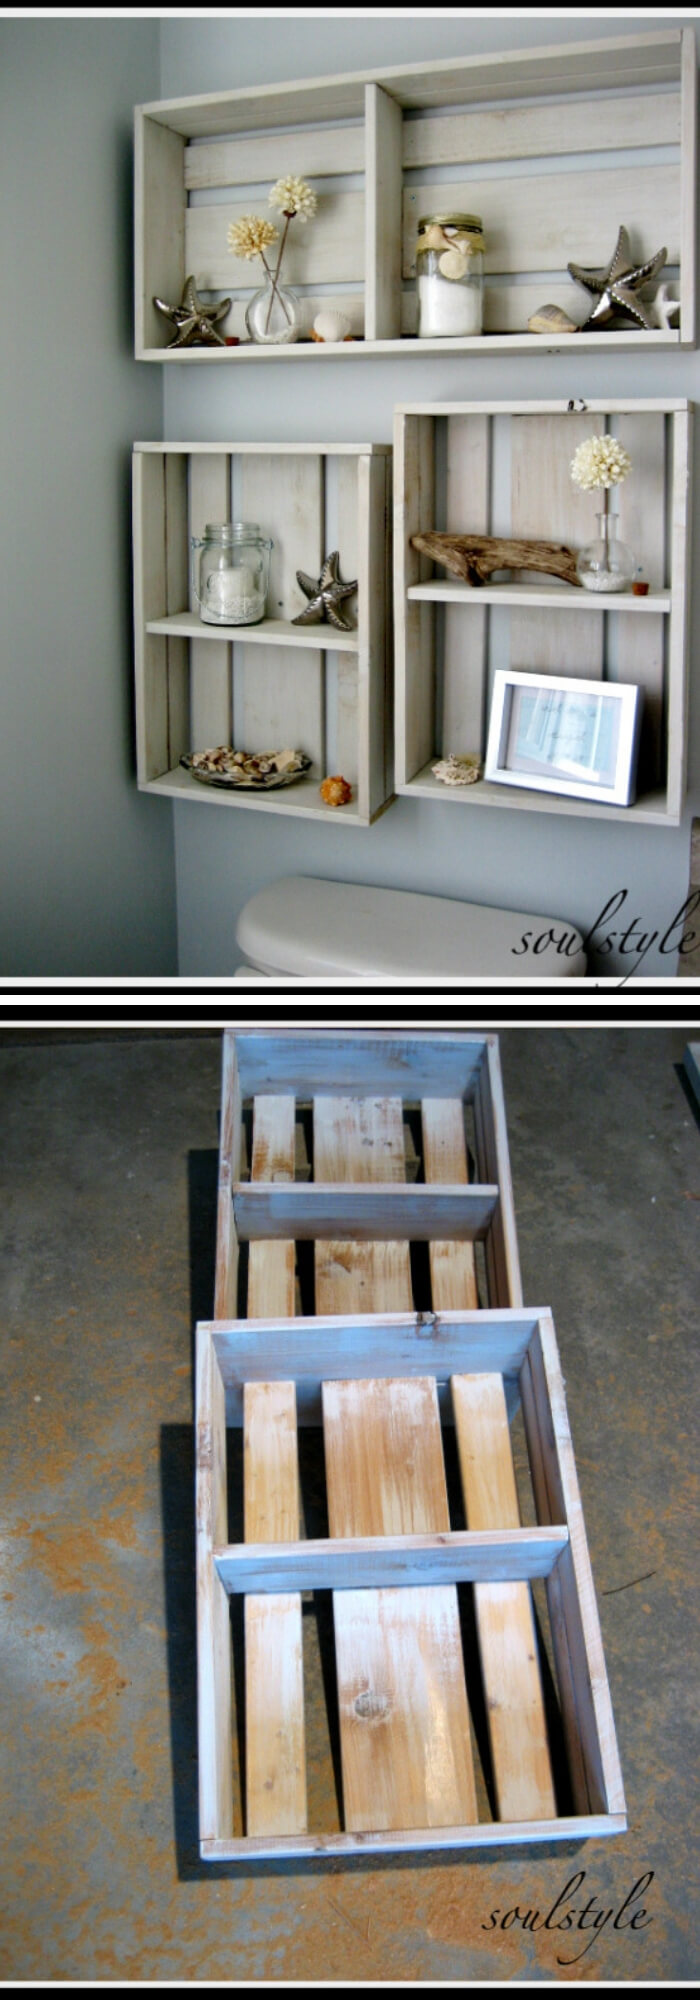 Repurposed Wood Crate | Best Over the Toilet Storage Ideas for Bathroom